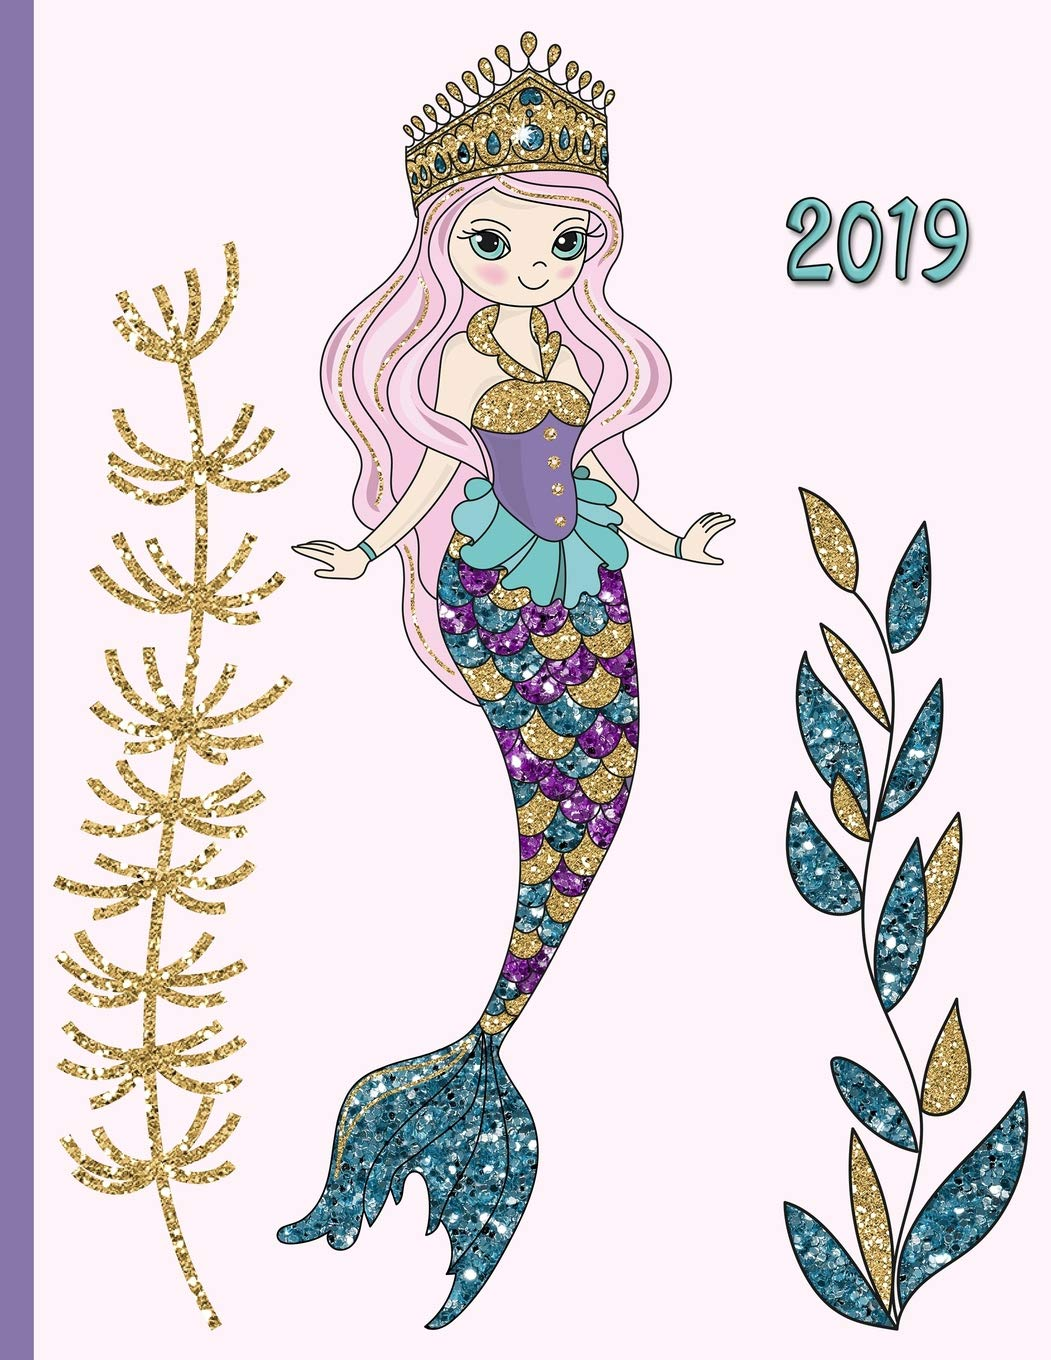 Glitter mermaid clipart clip library stock Glitter Mermaid in the Sea with Seaweed Kelp and Colorful Fish: 2019 ... clip library stock